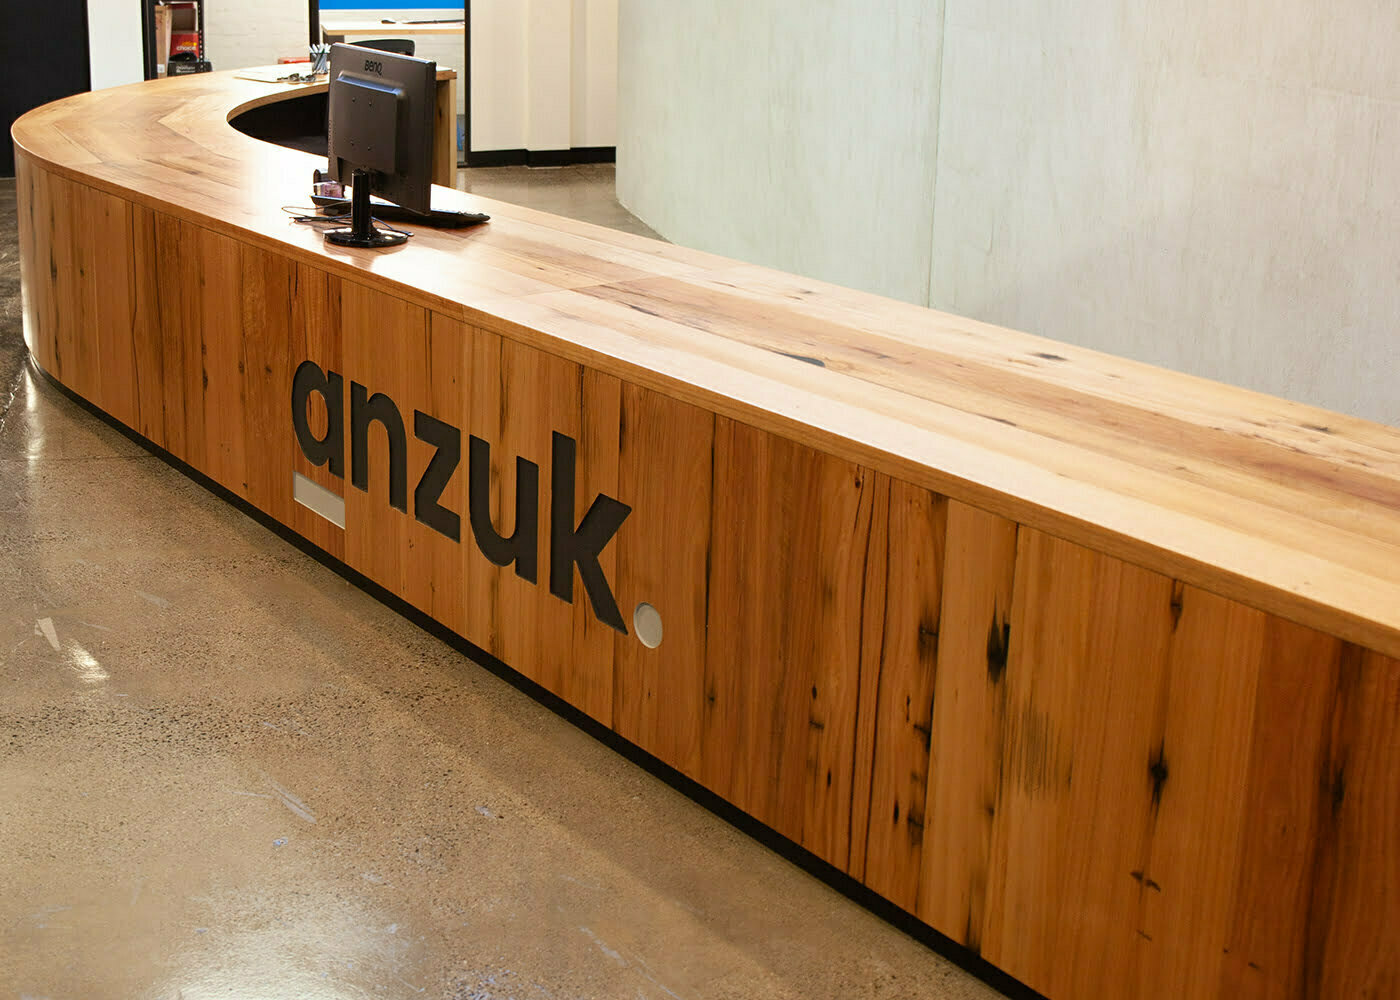 ANZUK custom reception desk